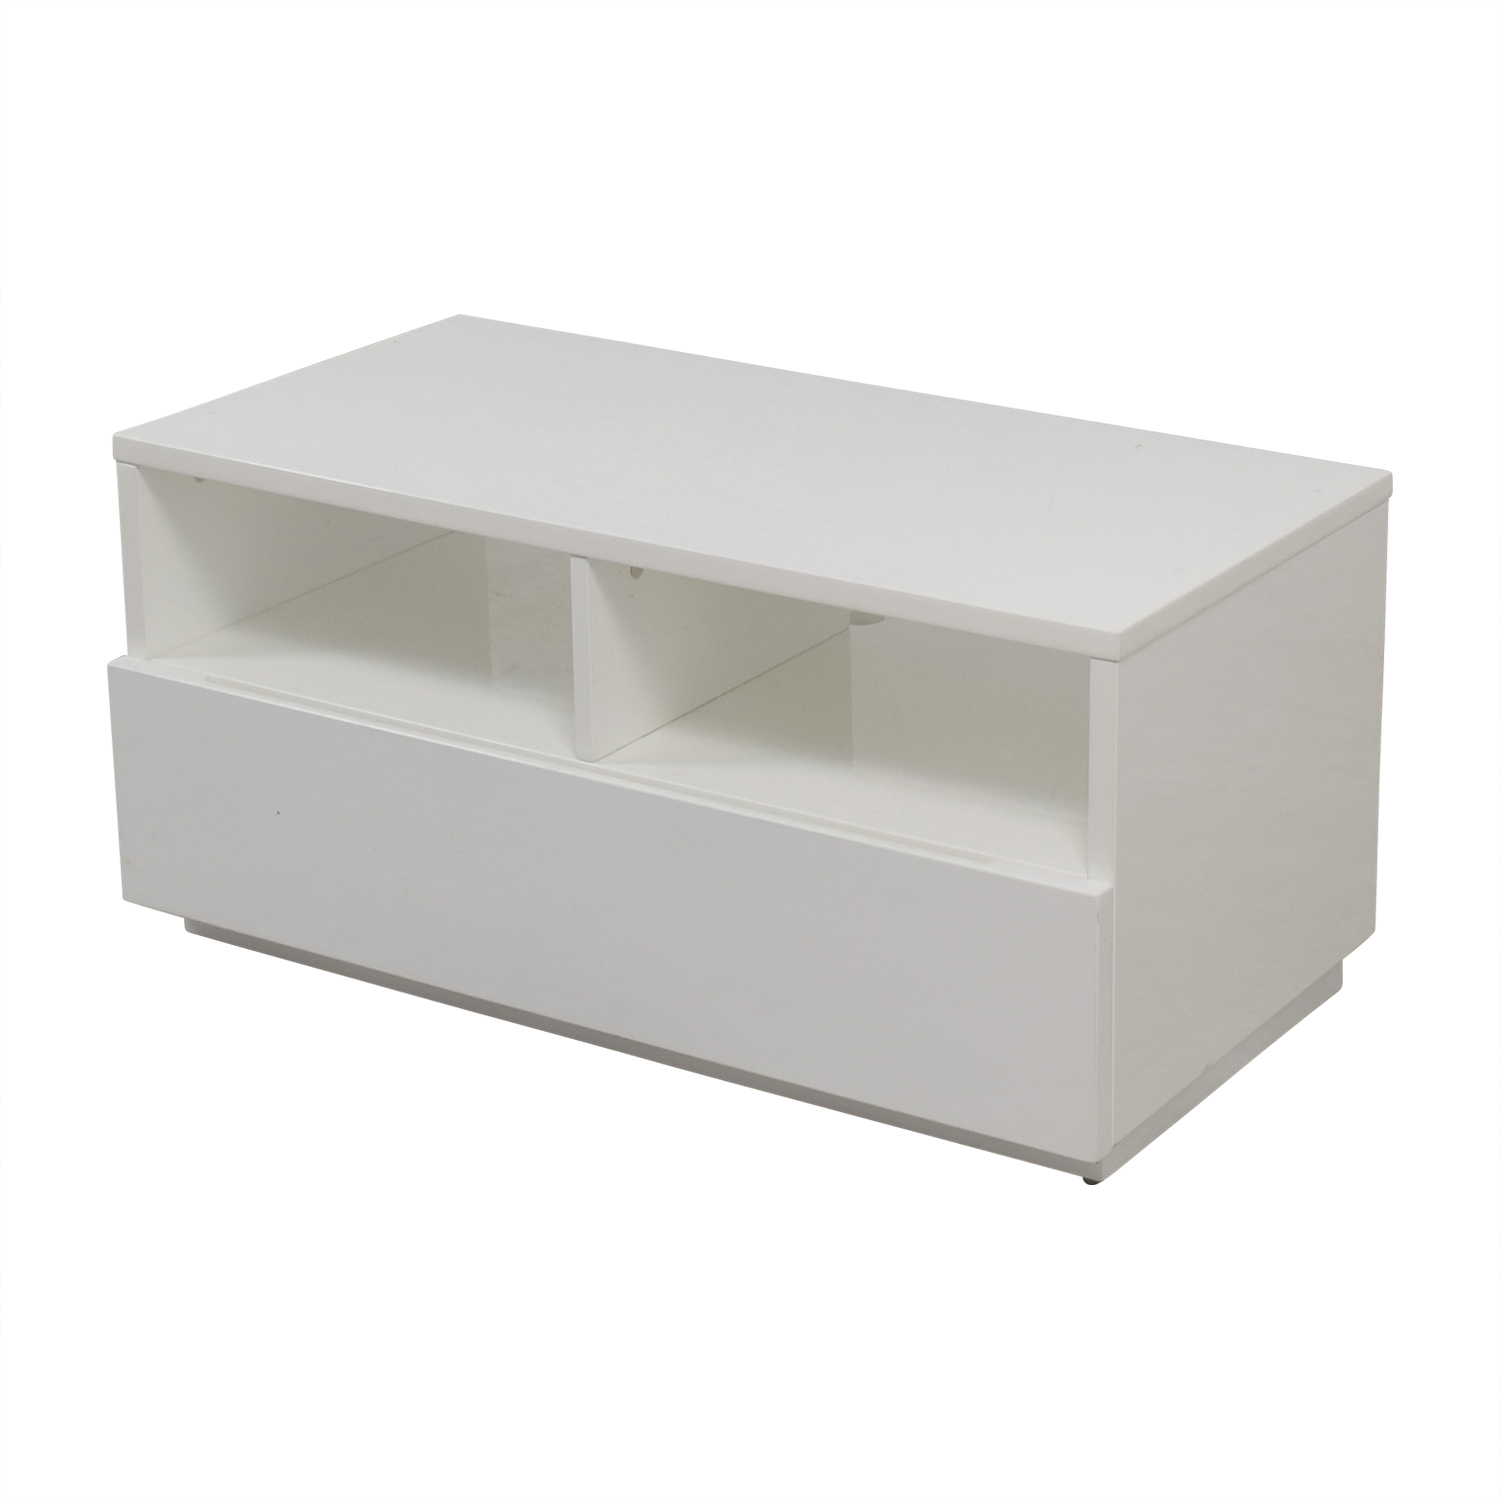 Cb2 Cb2 Chill White Media Console Nj